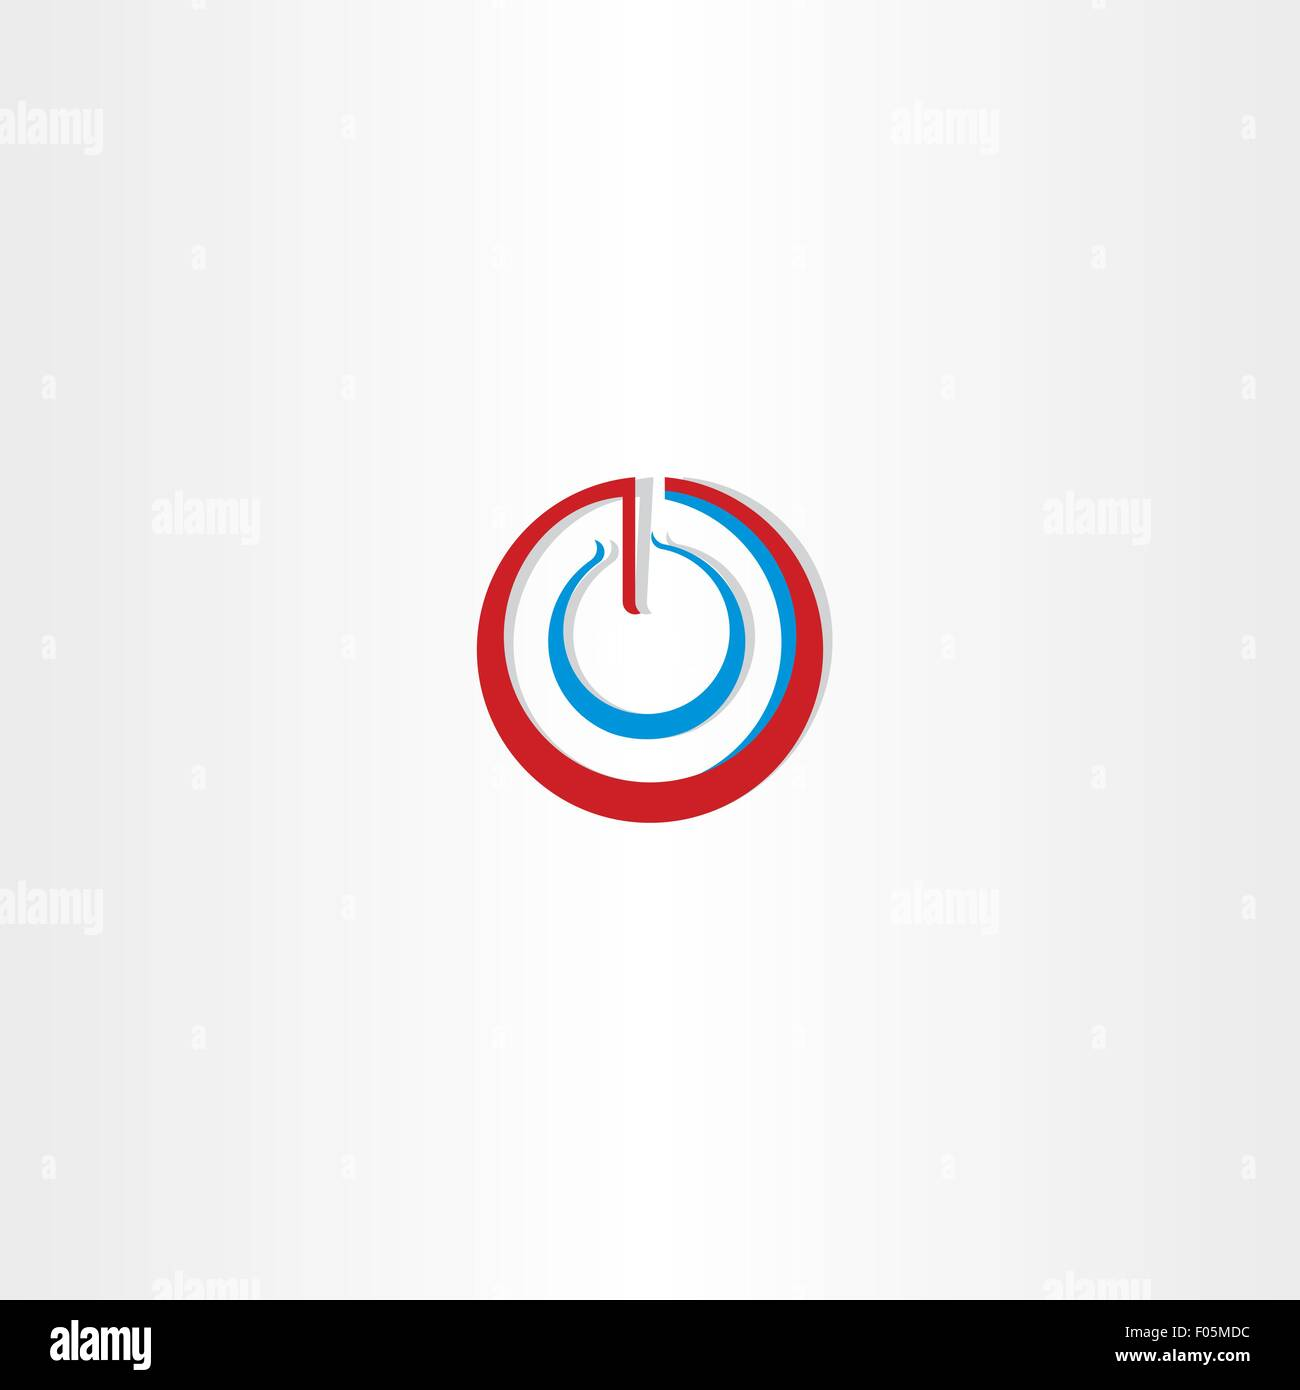 Power On Off Stylized Symbol Design Stock Vector Art Illustration